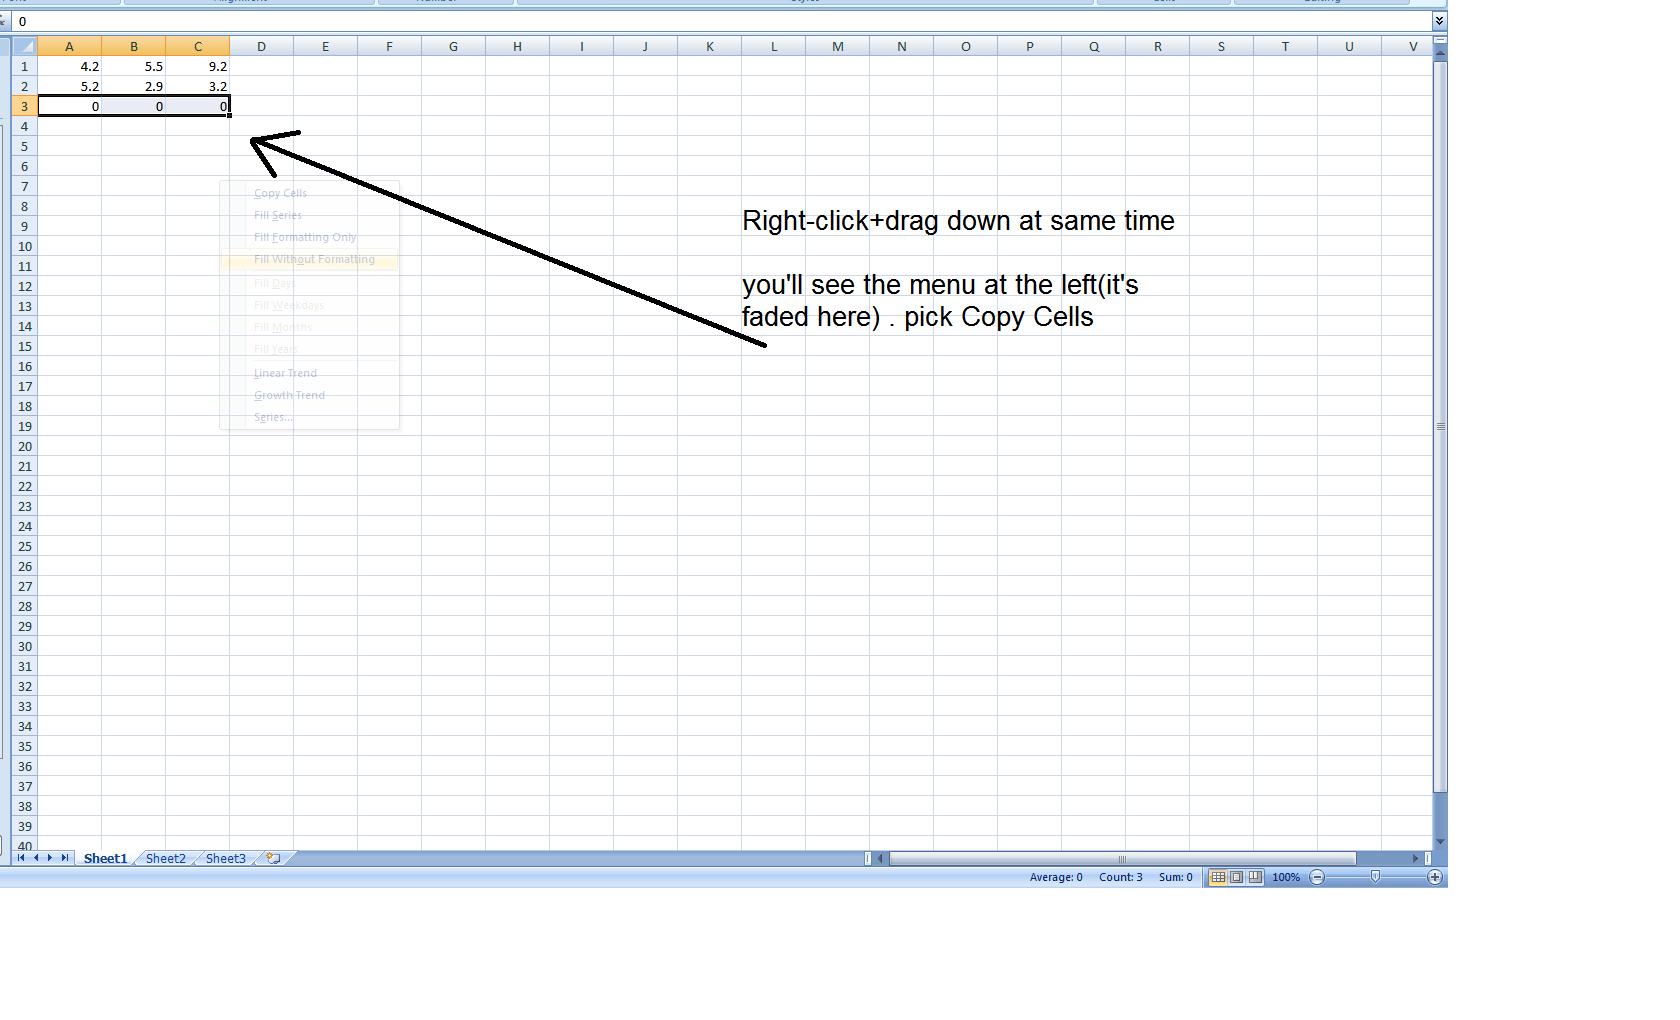 How To Extract Data From Excel Sheet In Matlab